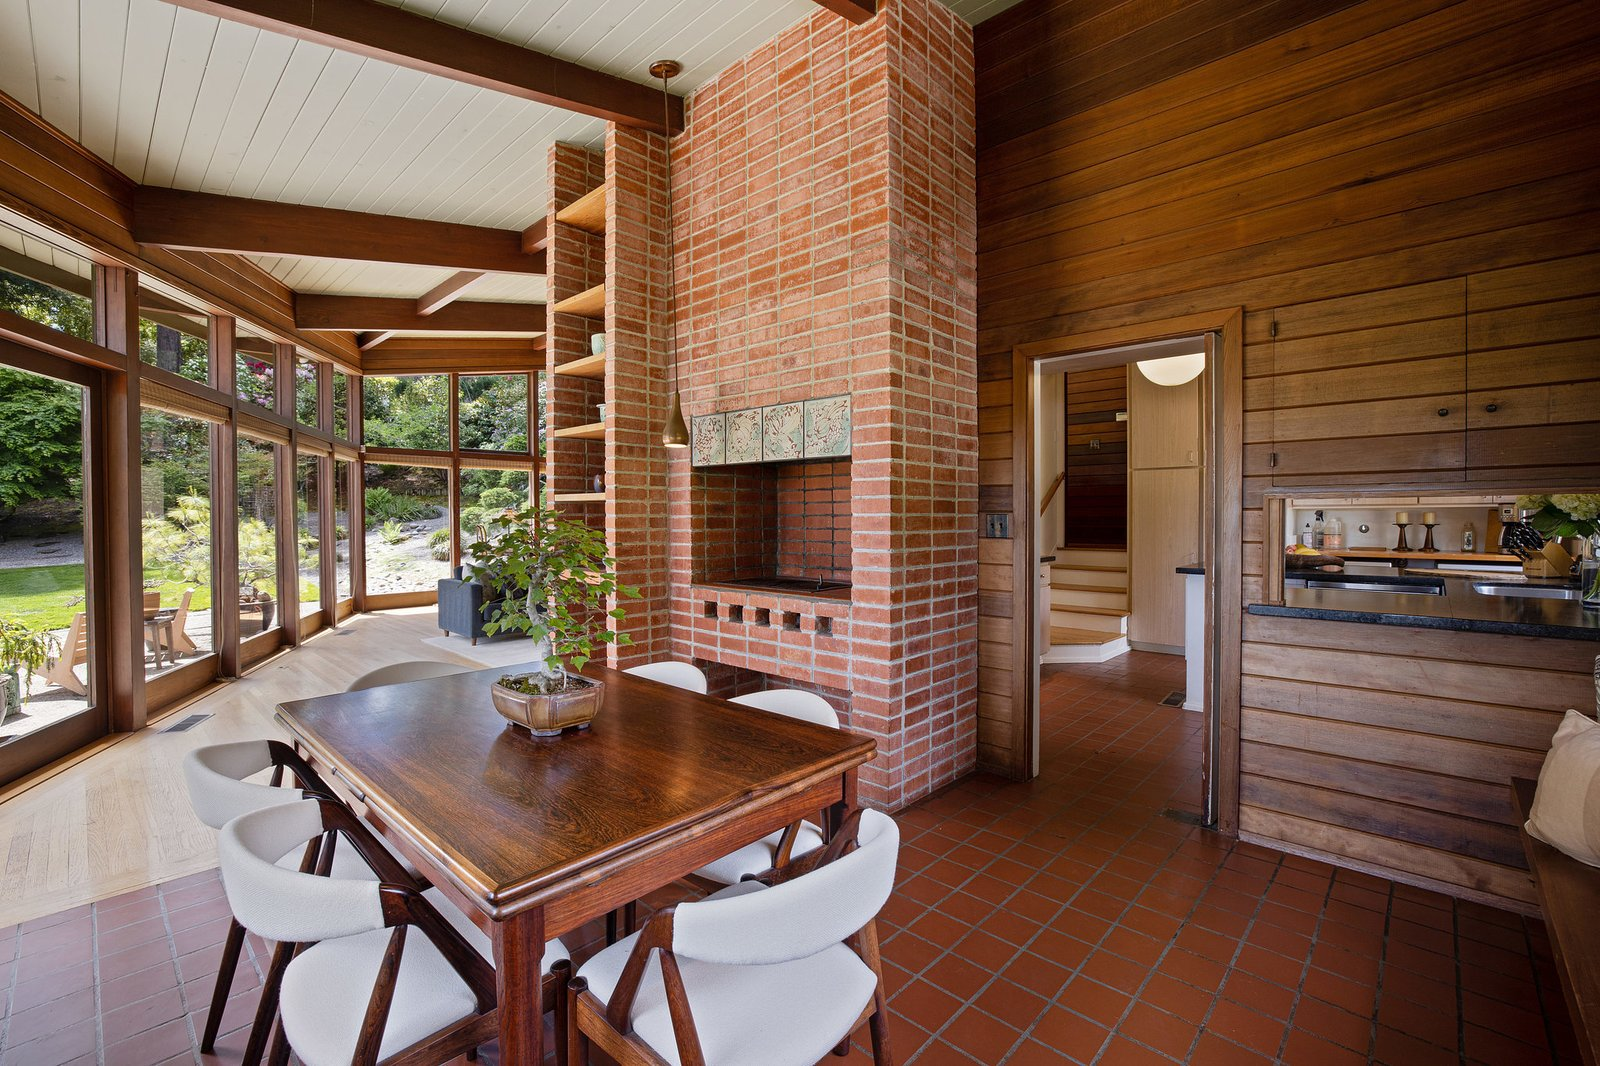 Around the bend from the living room, a dining area comes complete with an original built-in pizza oven, as well as built-in seating and storage. A small pass-through connects with the kitchen.  Photo 6 of 21 in An Impeccable Midcentury Compound in the Berkeley Hills Wants $3.4M